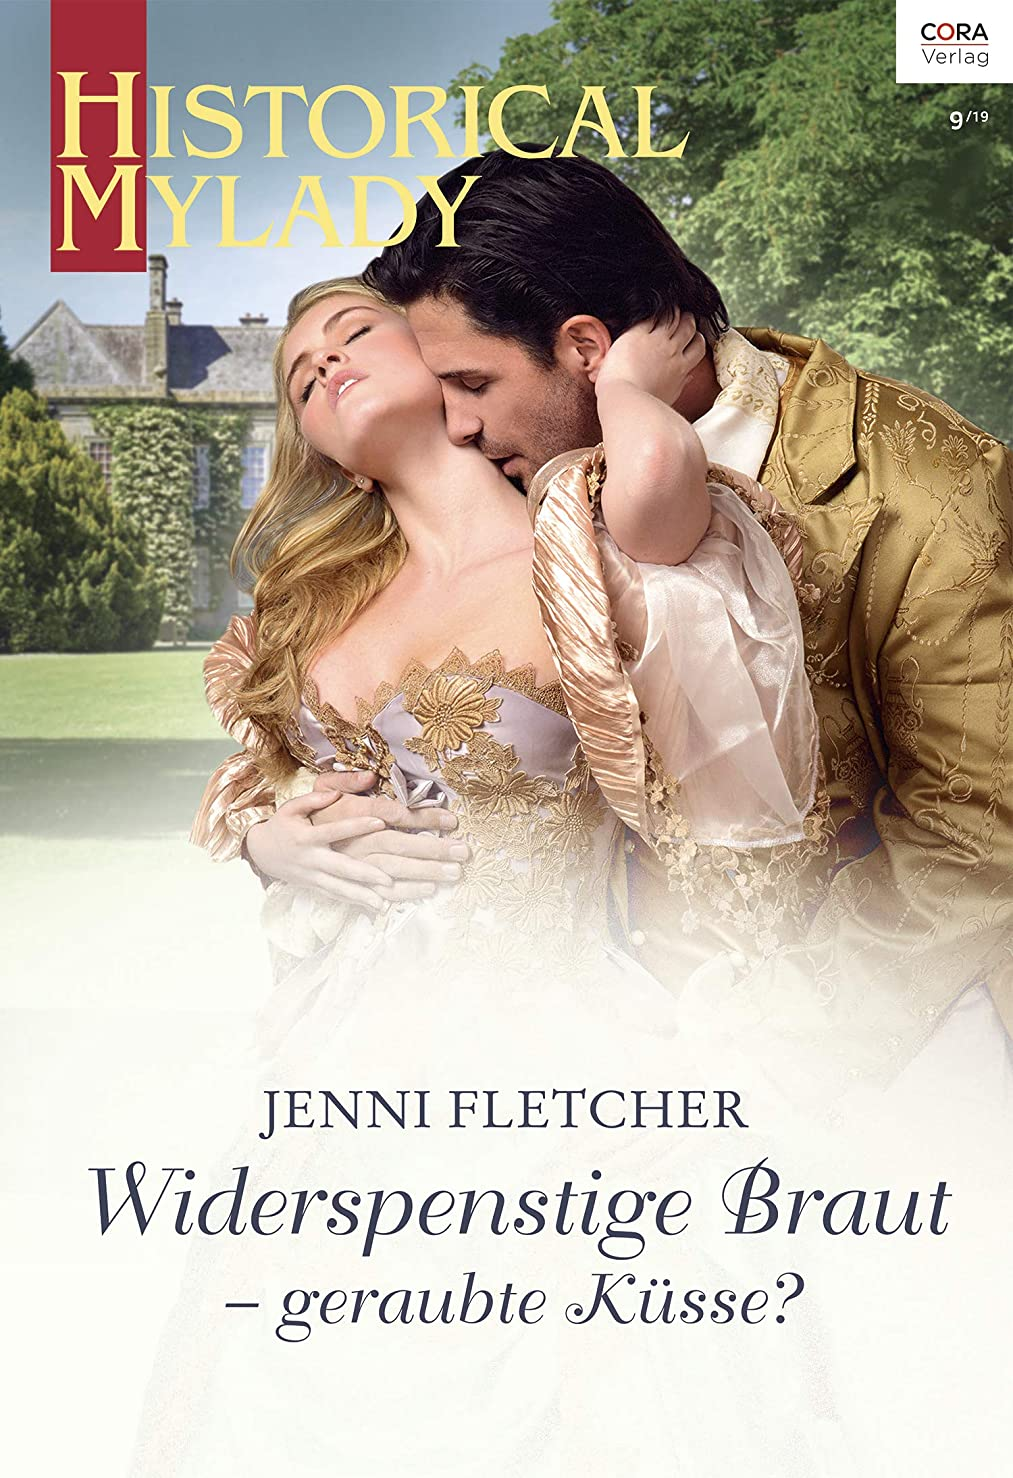 どこ強打四面体Widerspenstige Braut - geraubte Küsse? (Historical MyLady 599) (German Edition)